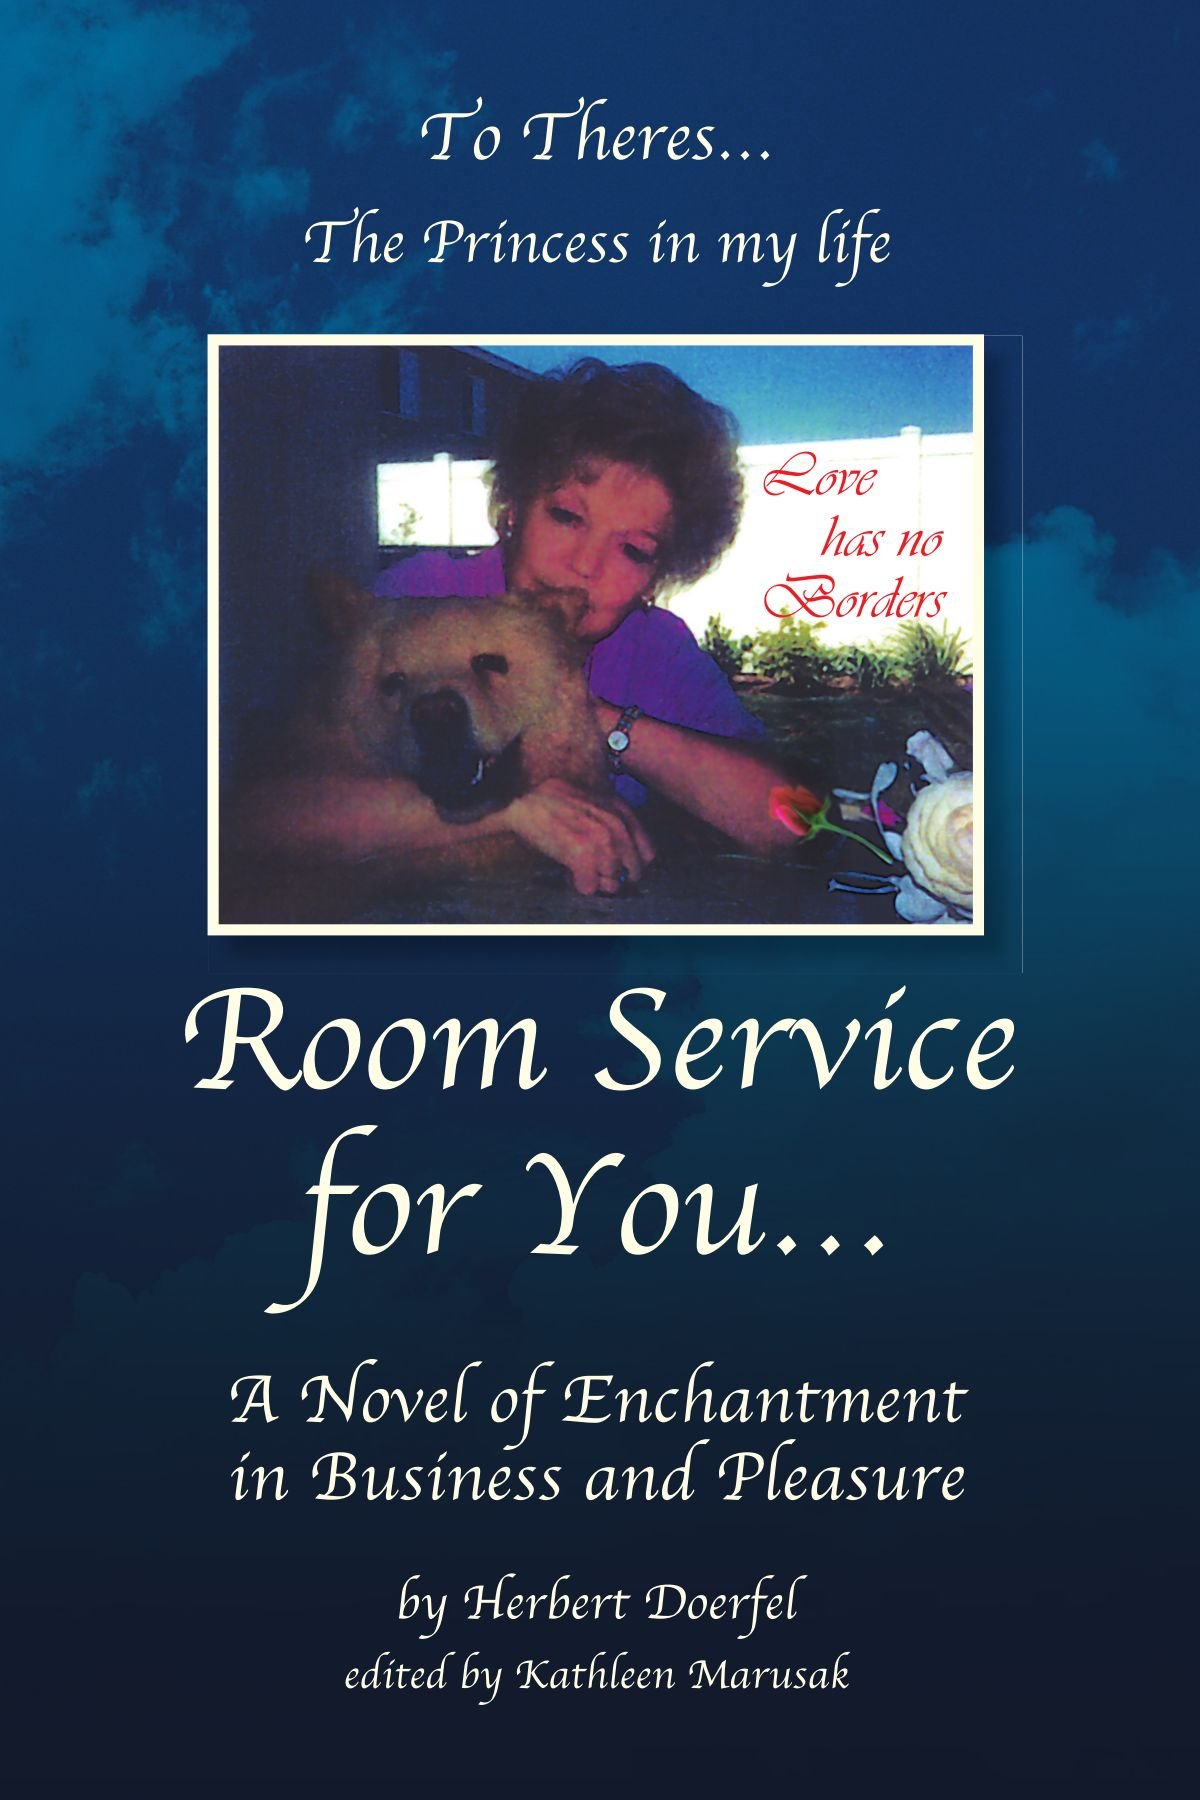 Room Service for You¡K: A Novel of Enchantmentin Business and Pleasure PDF